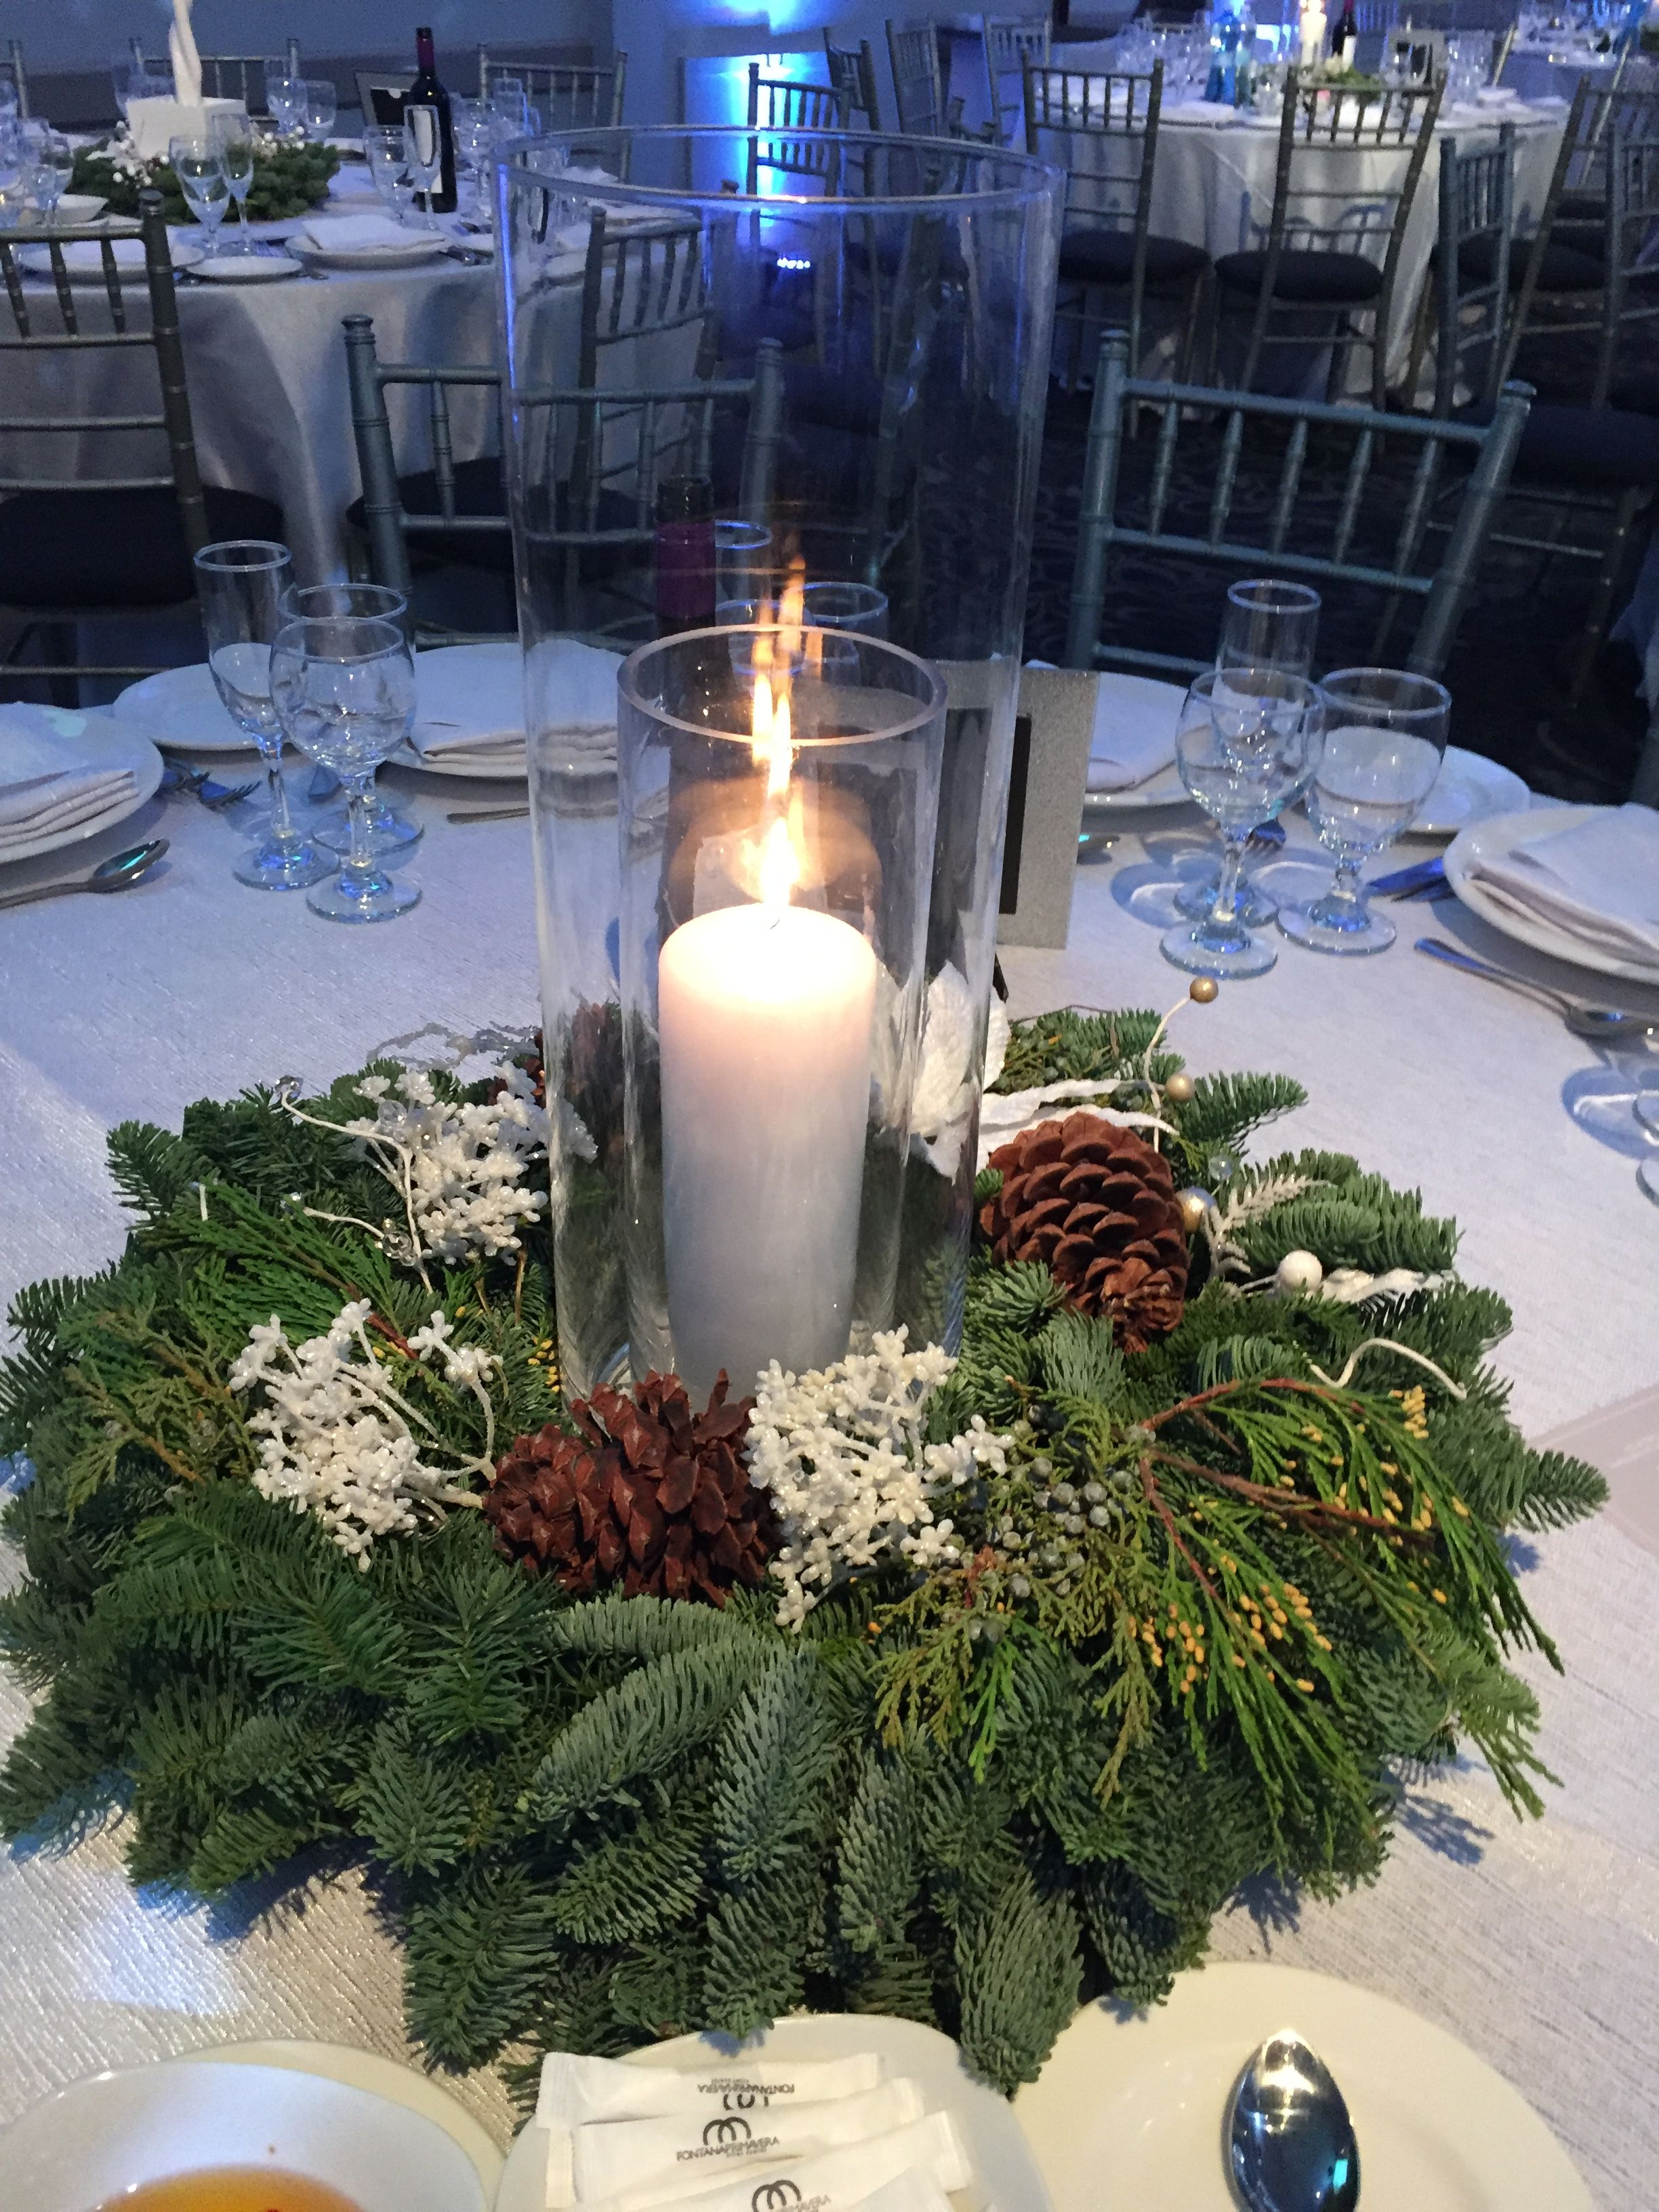 Winter Green Wedding Winter Wonderland Wedding Centerpieces Winter Wedding Centerpieces Winter Wedding Table